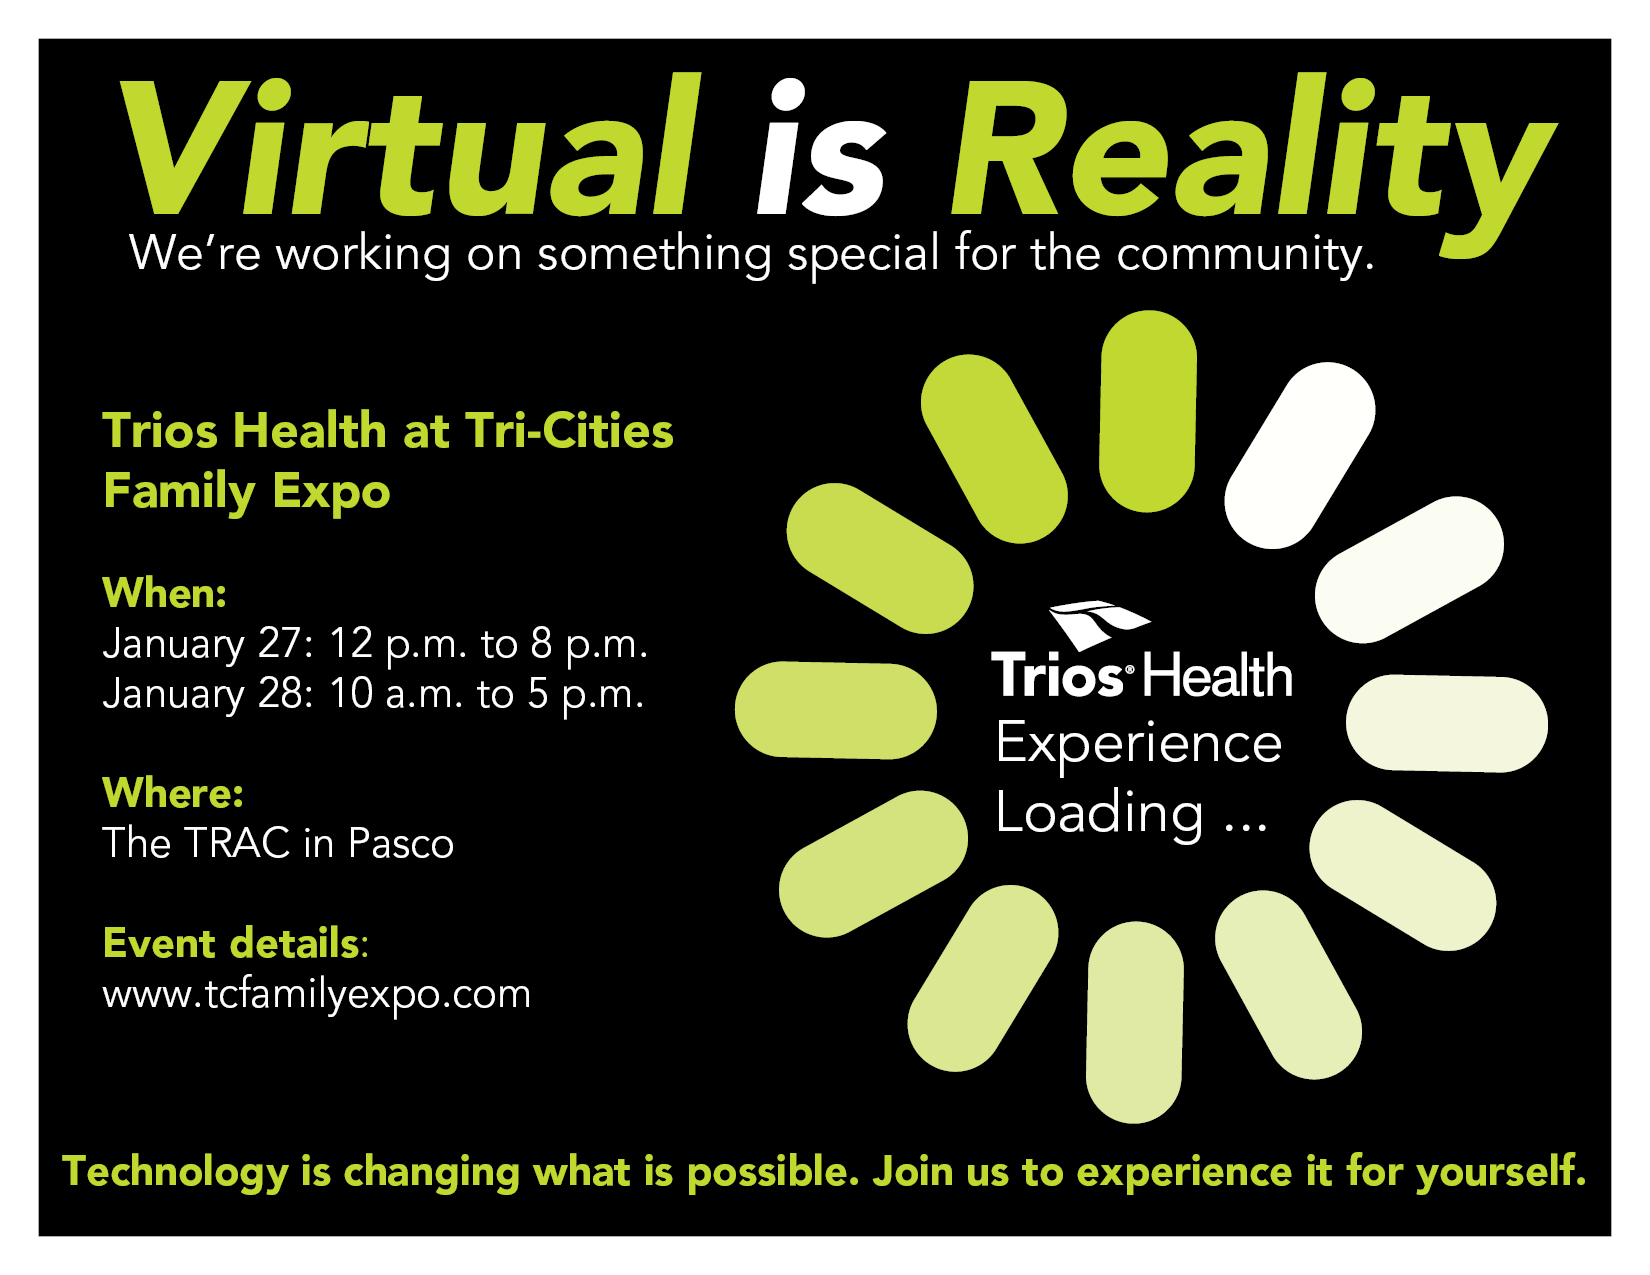 Trios health at tri cities family expo trios health technology is changing what is possible join us to experience it for yourself at the trios health exhibit at tri cities family expo solutioingenieria Choice Image